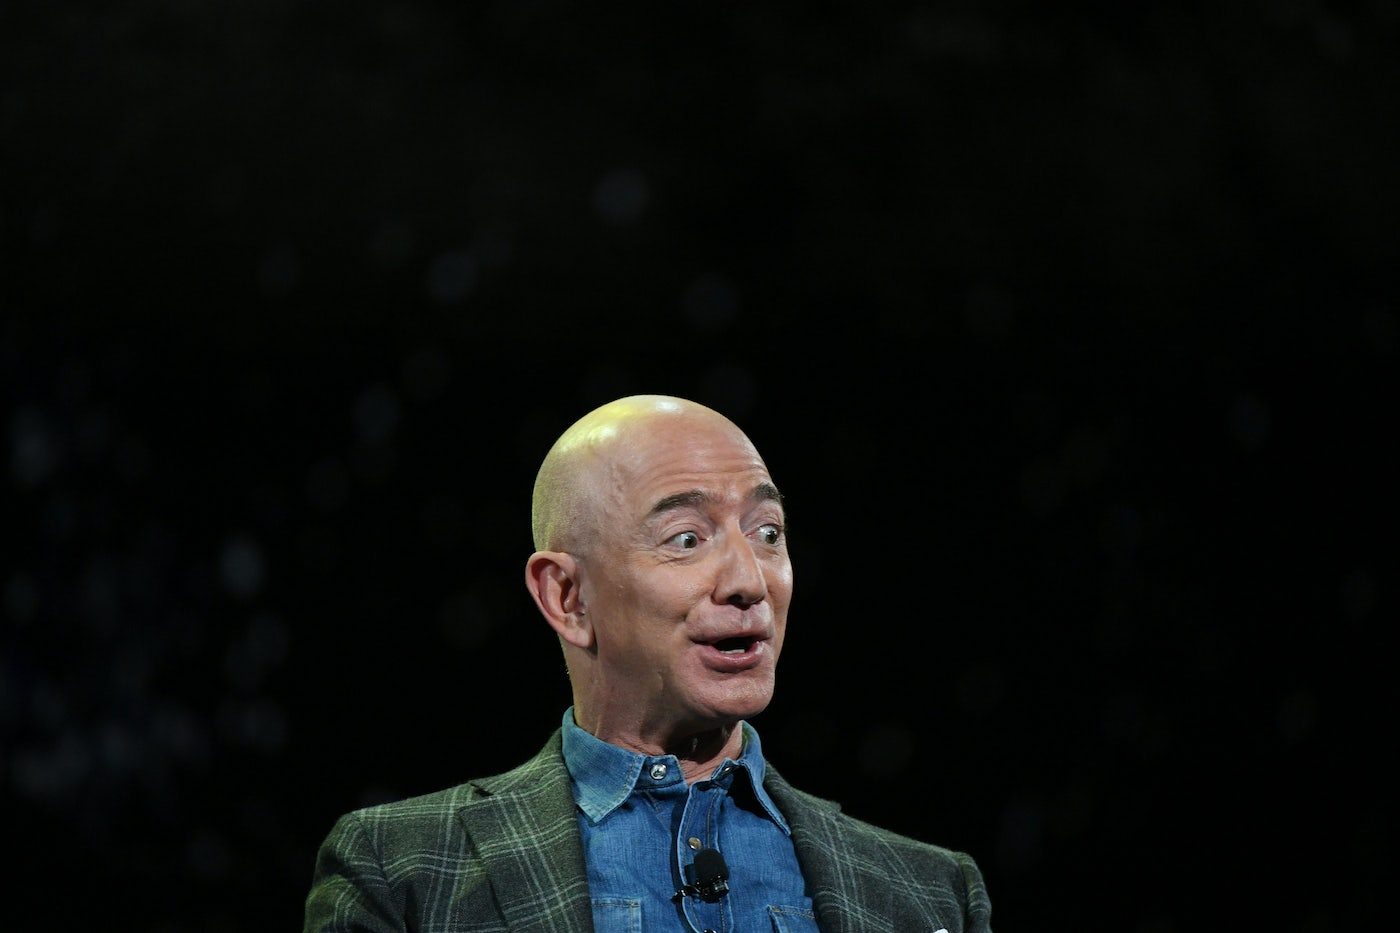 Jeff Bezos, against a black backdrop, looks surprised and excited